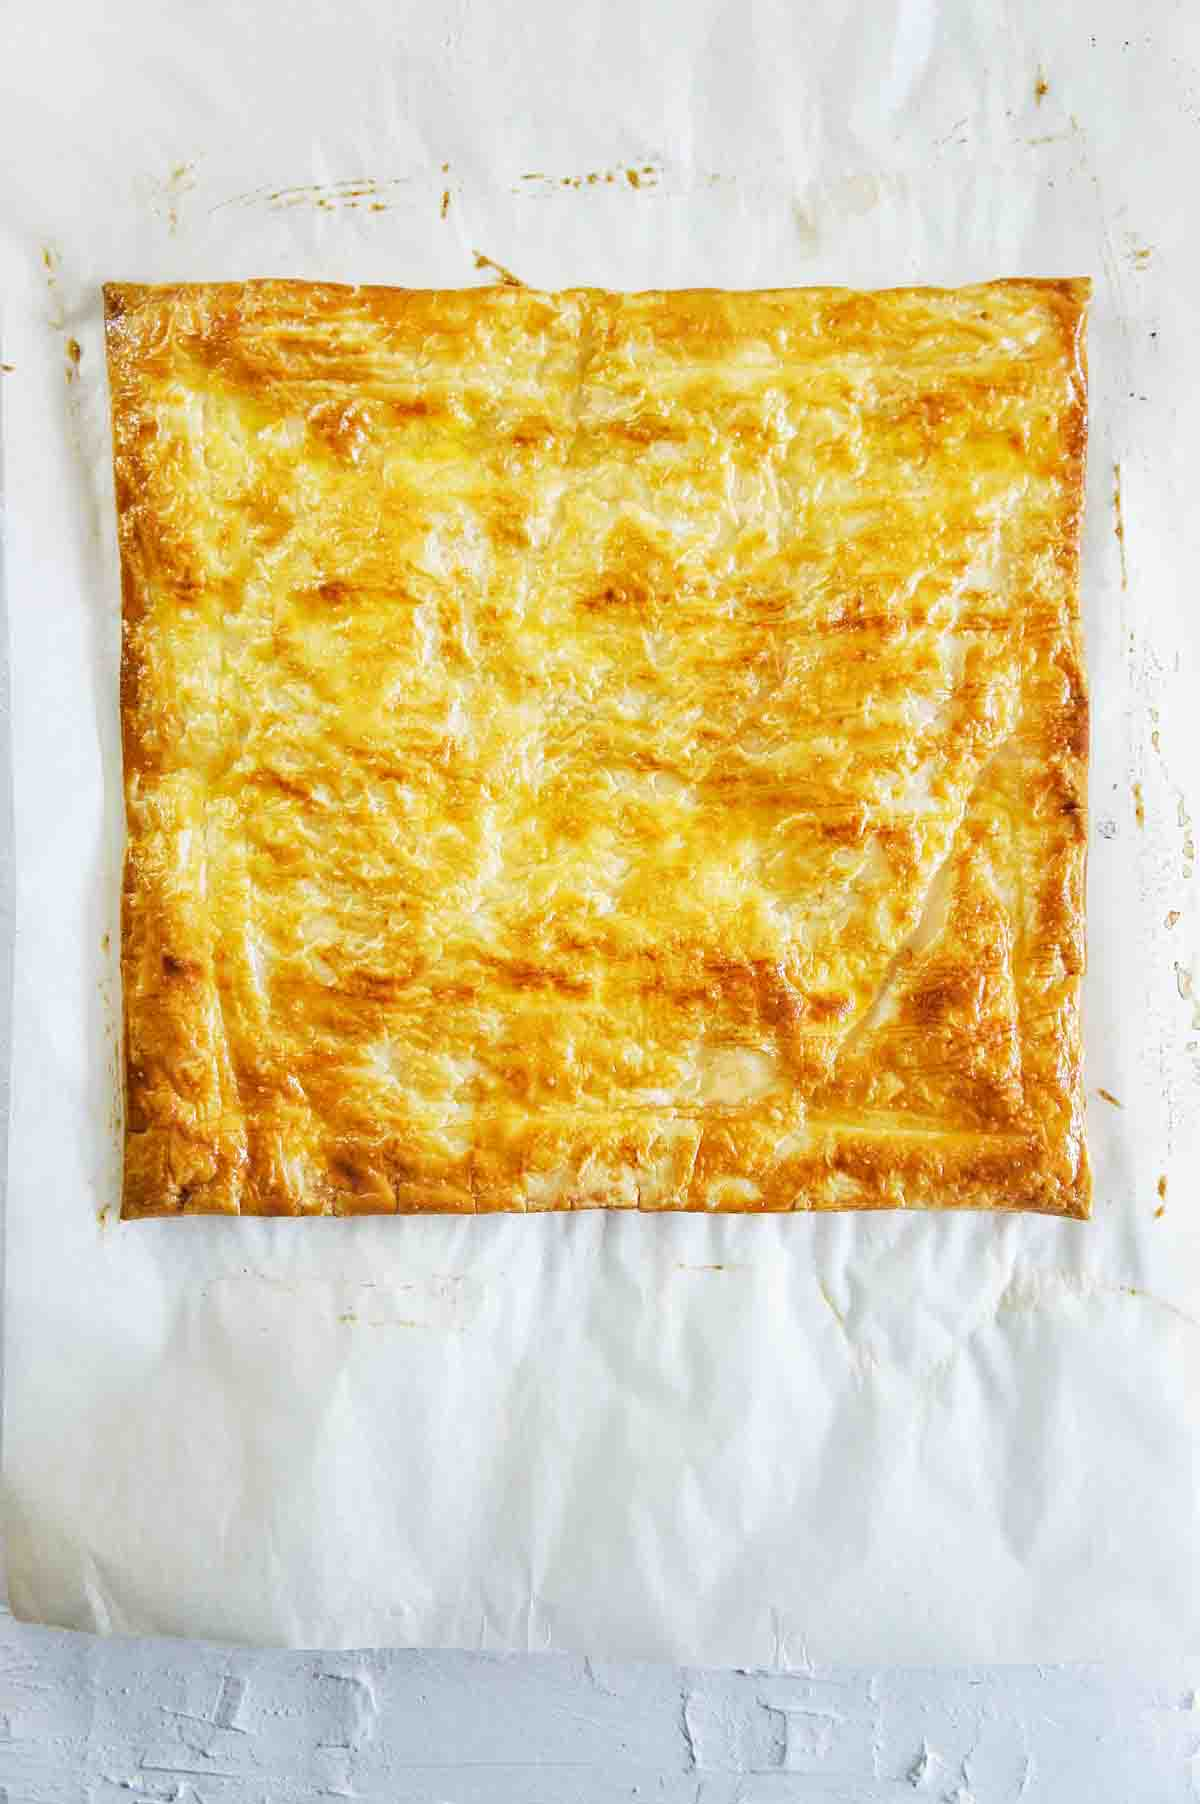 Passionfruit Tart process shot showing cooked puff pastry on a white background